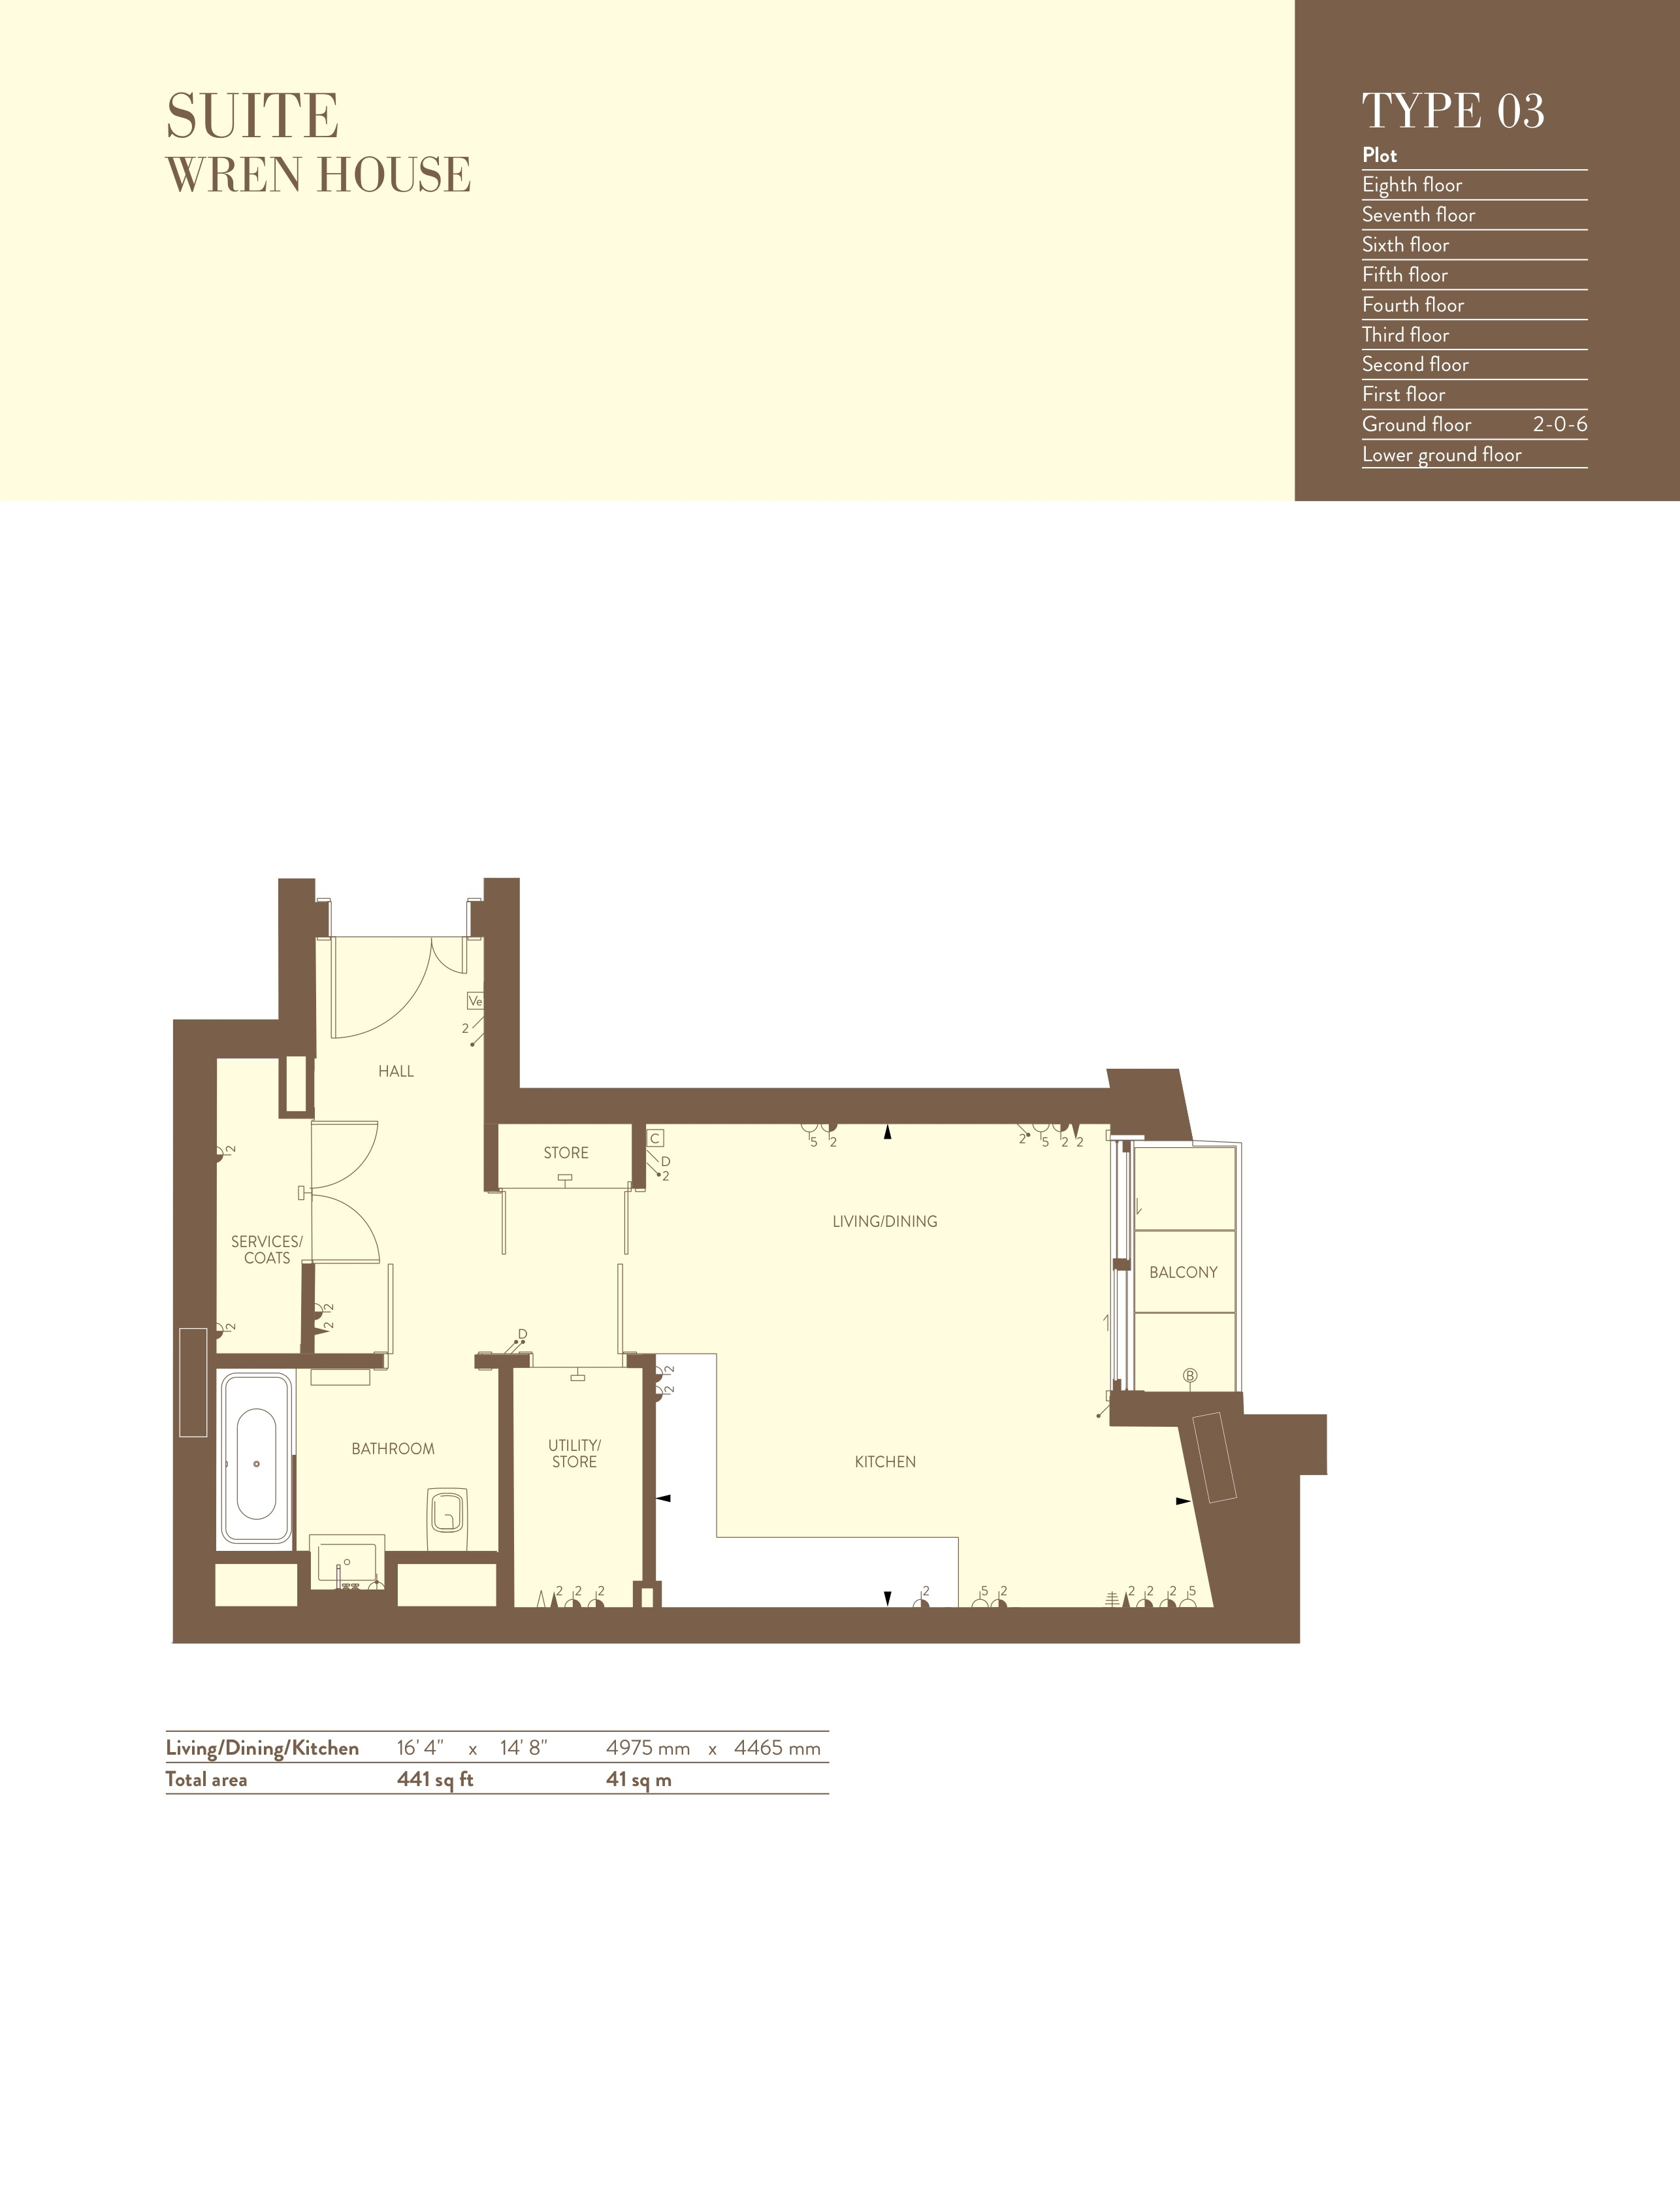 London City Of Westminster WC2 Wren House 190 Strand 03 on Simple House Plans